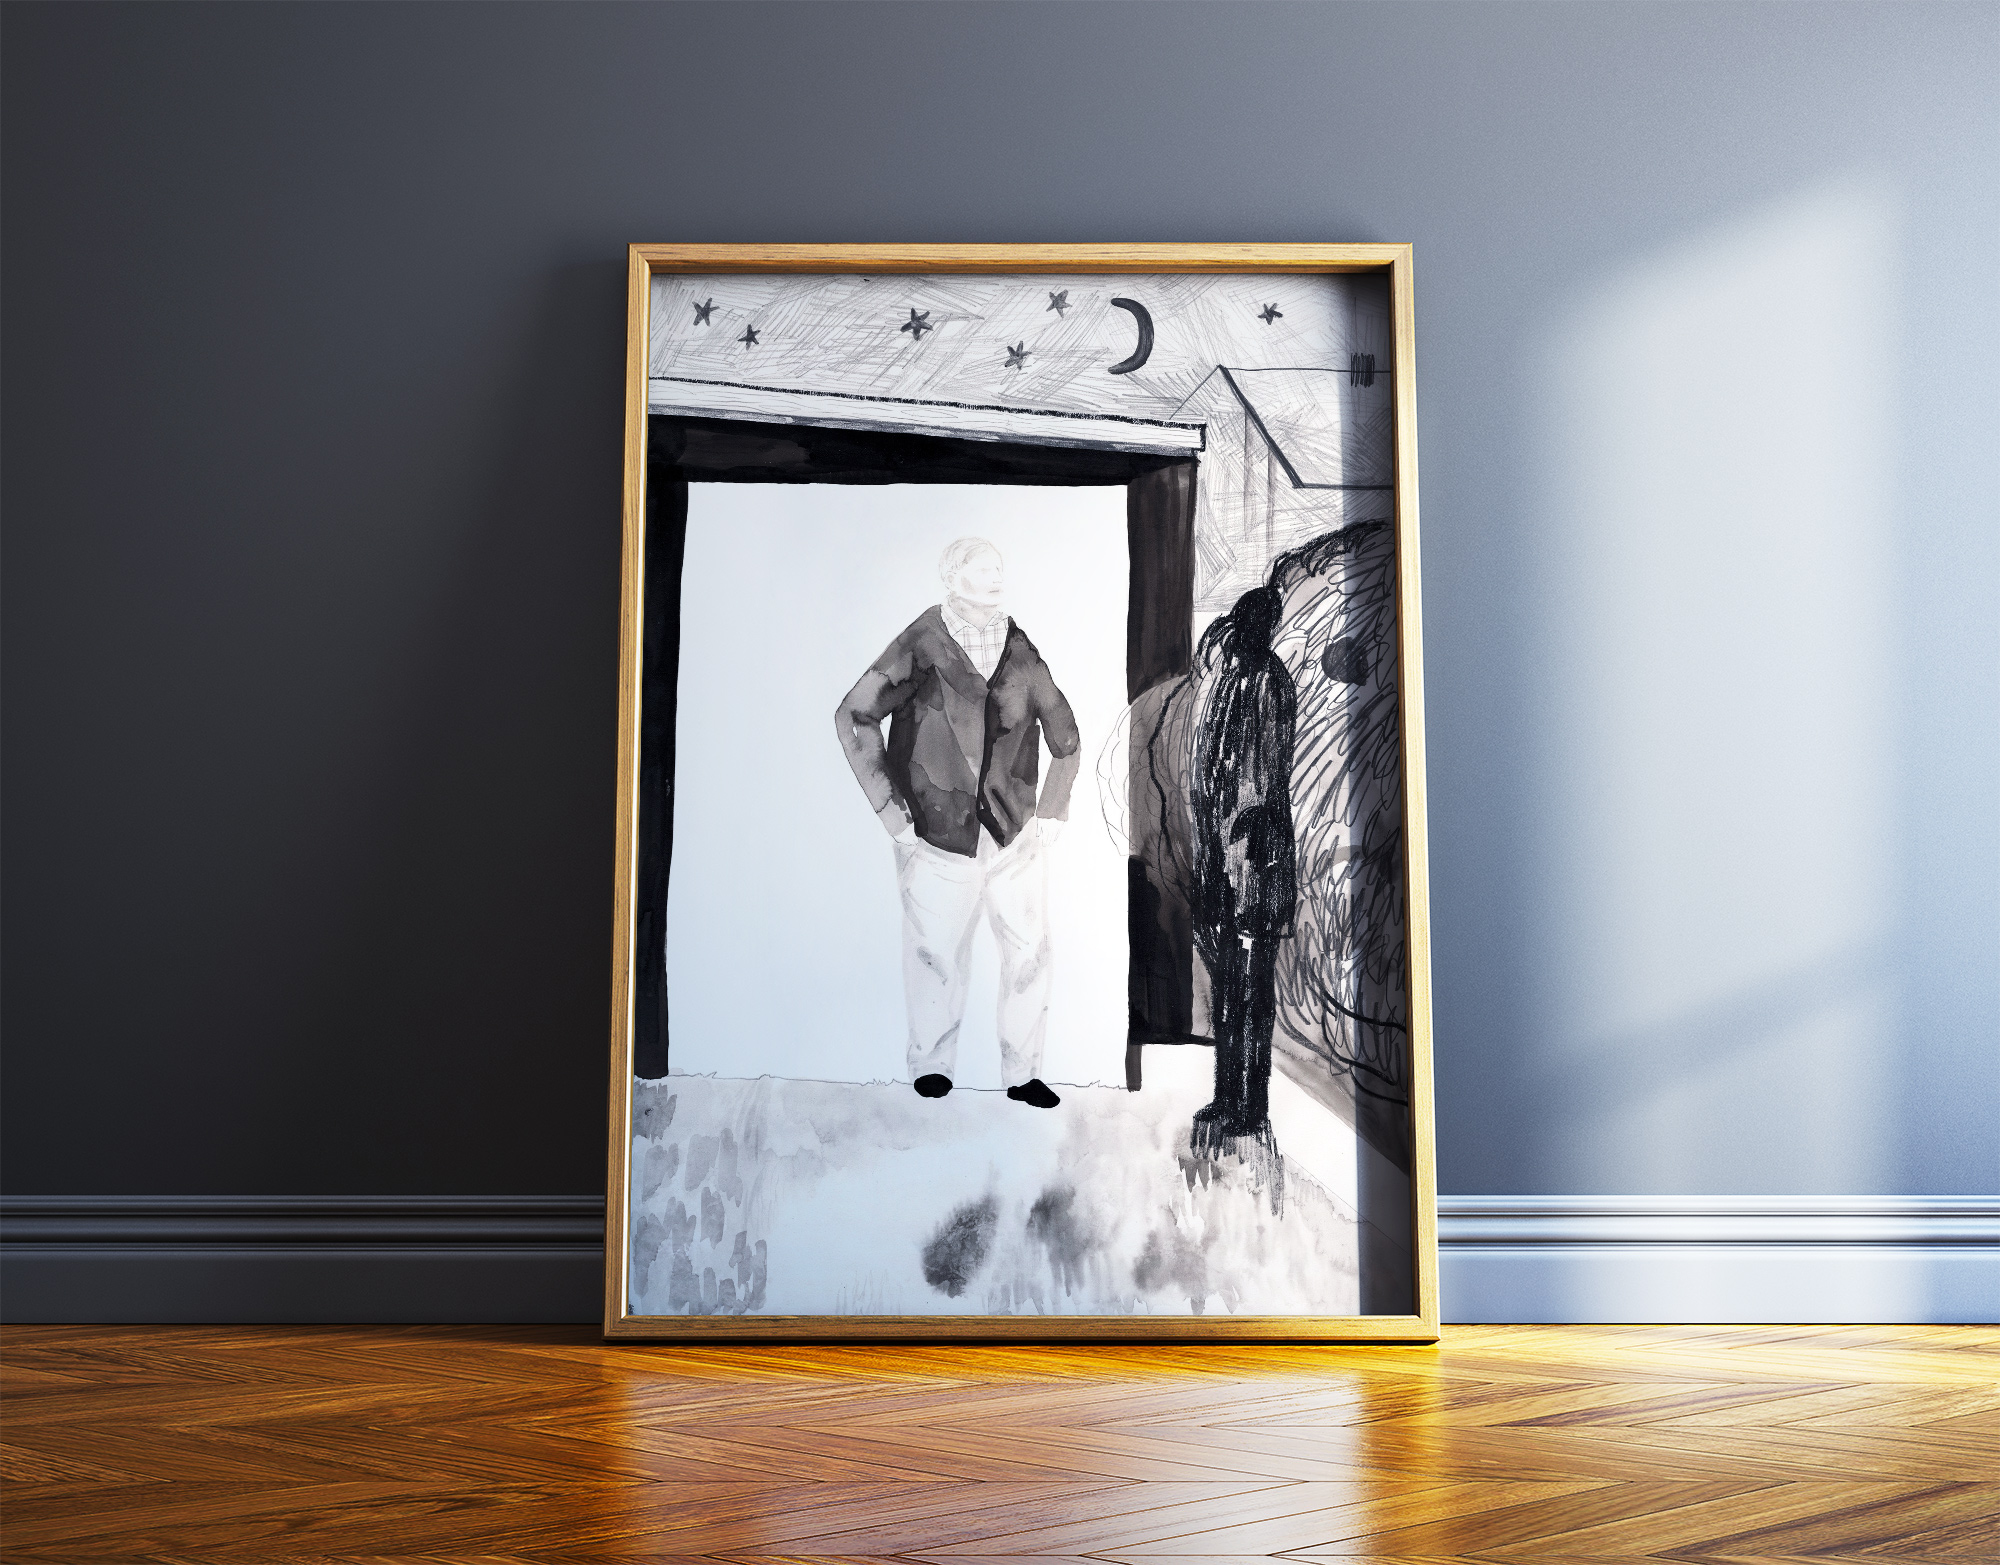 art-prints, gliceé, figurative, illustrative, landscape, monochrome, bodies, people, sky, black, grey, white, ink, paper, beautiful, black-and-white, buildings, contemporary-art, copenhagen, danish, decorative, design, interior, interior-design, modern, modern-art, nordic, posters, prints, scandinavien, sketch, Buy original high quality art. Paintings, drawings, limited edition prints & posters by talented artists.